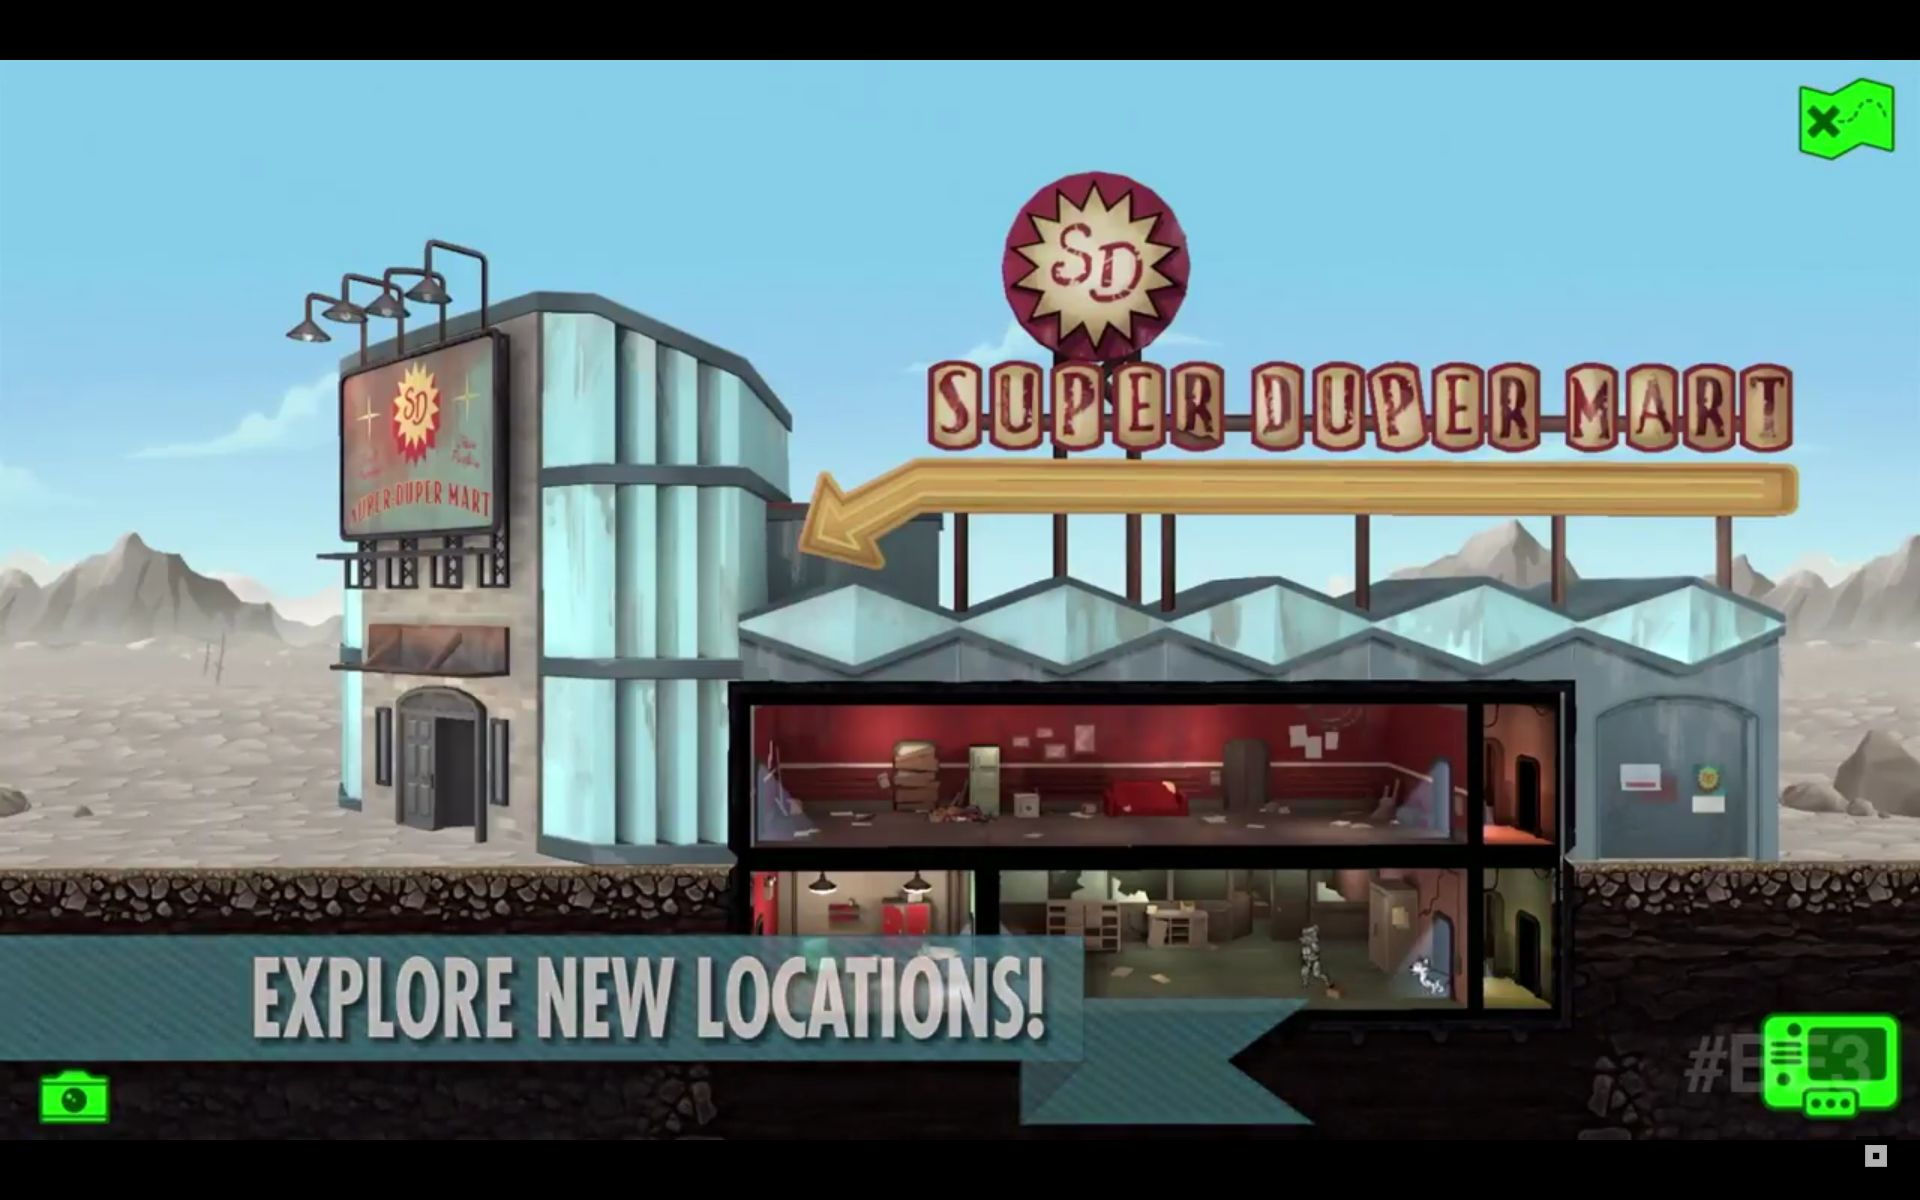 Fallout Shelter will be updated soon! Expect new quests, new locations and an updated combat system.